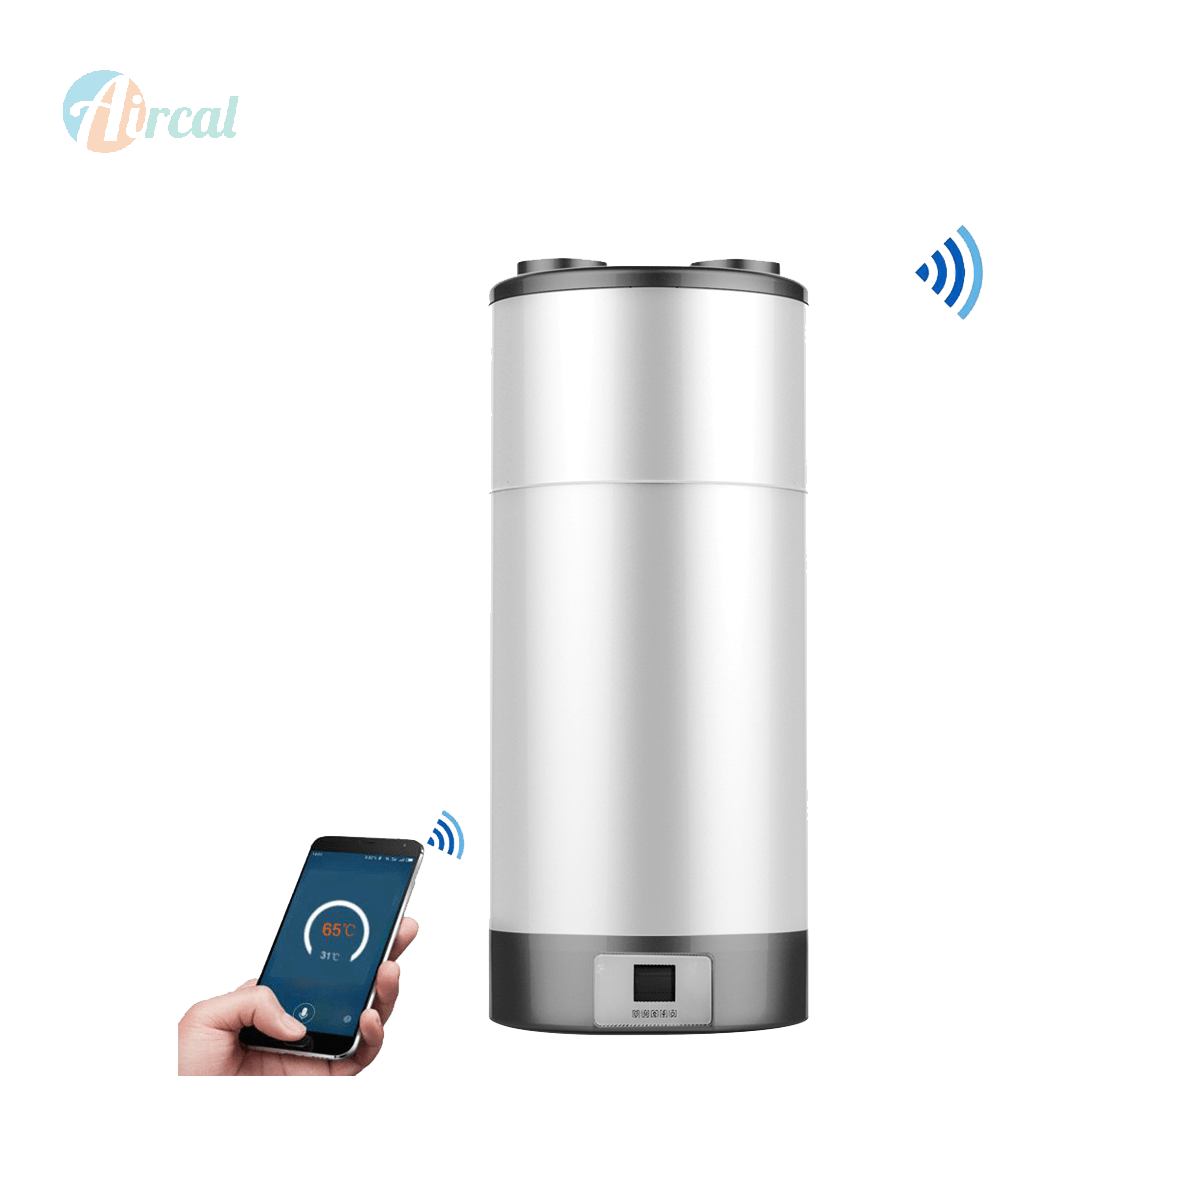 Smart 100L All in One wall mounted Hot Water Heat Pump A+ energy label economical water heater